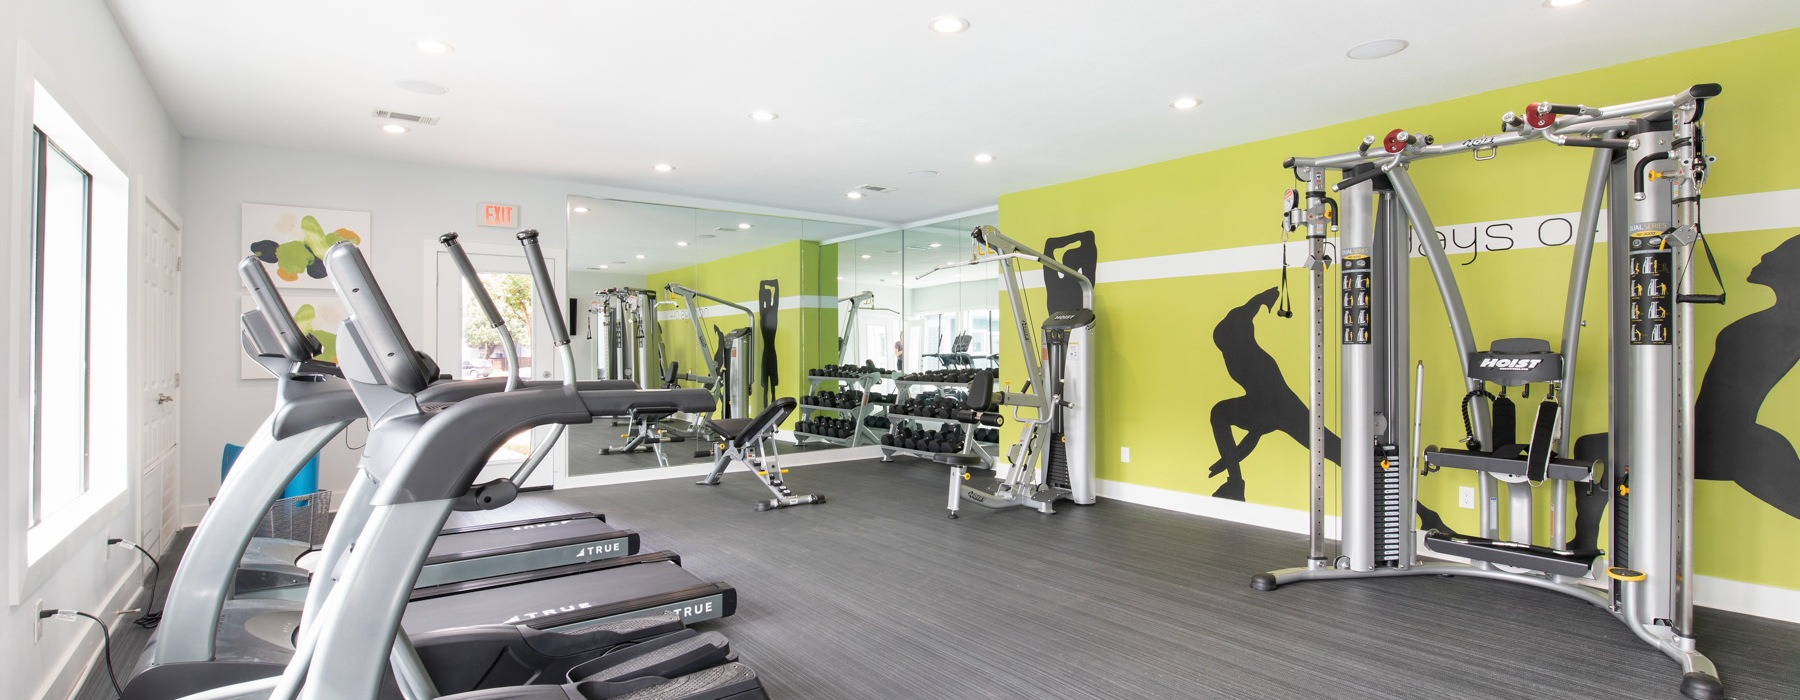 Up to date fitness center centrally located